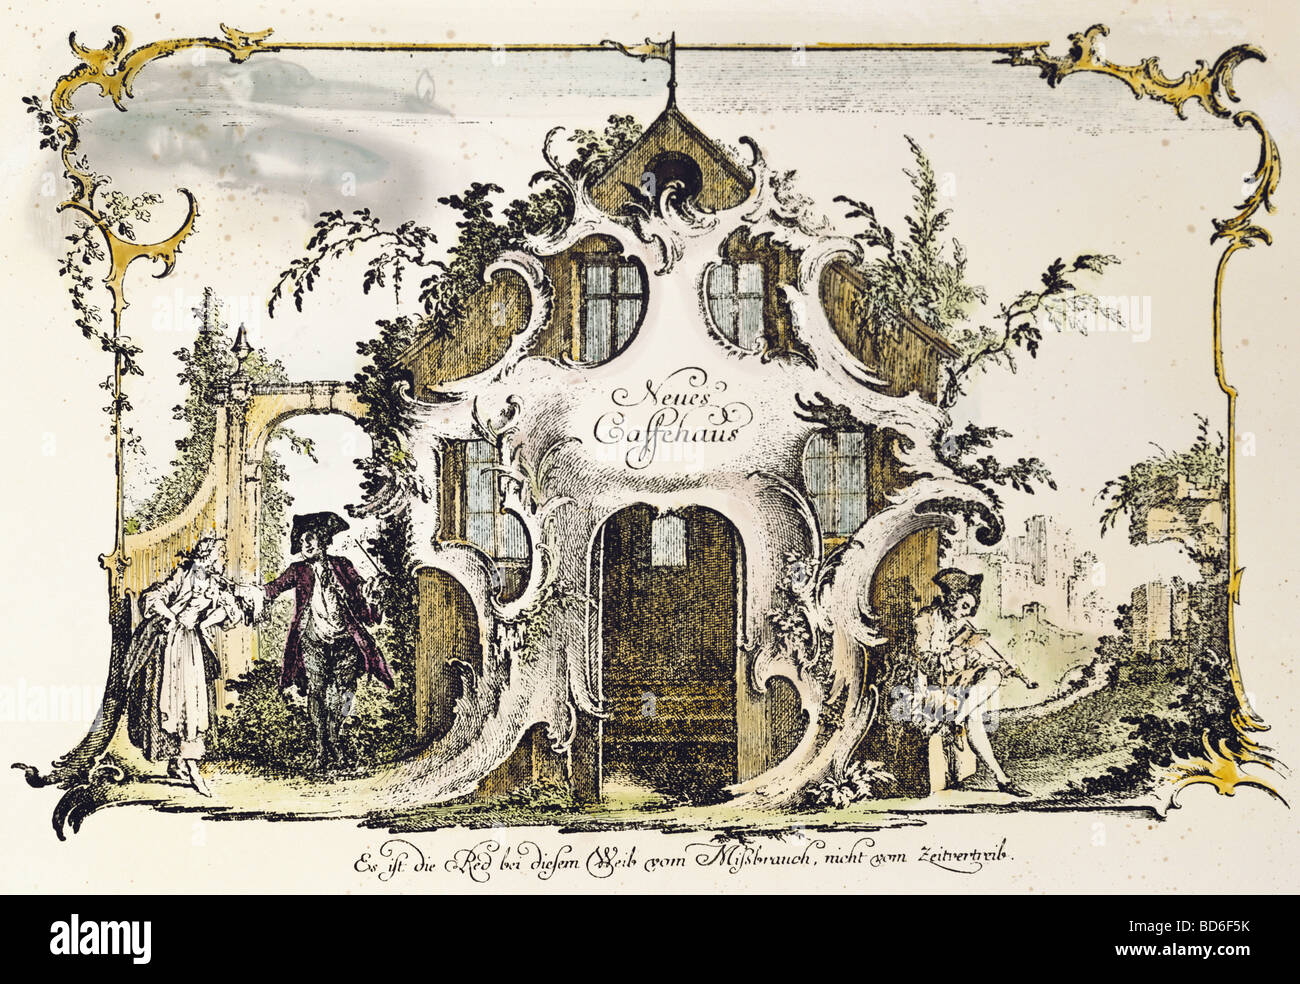 "fine arts, Nilson, Johannes Esaias (1721 - 1788), graphic, ""Neues Cafehaus"", copper engraving, coloured, Augsburg, Stock Photo"